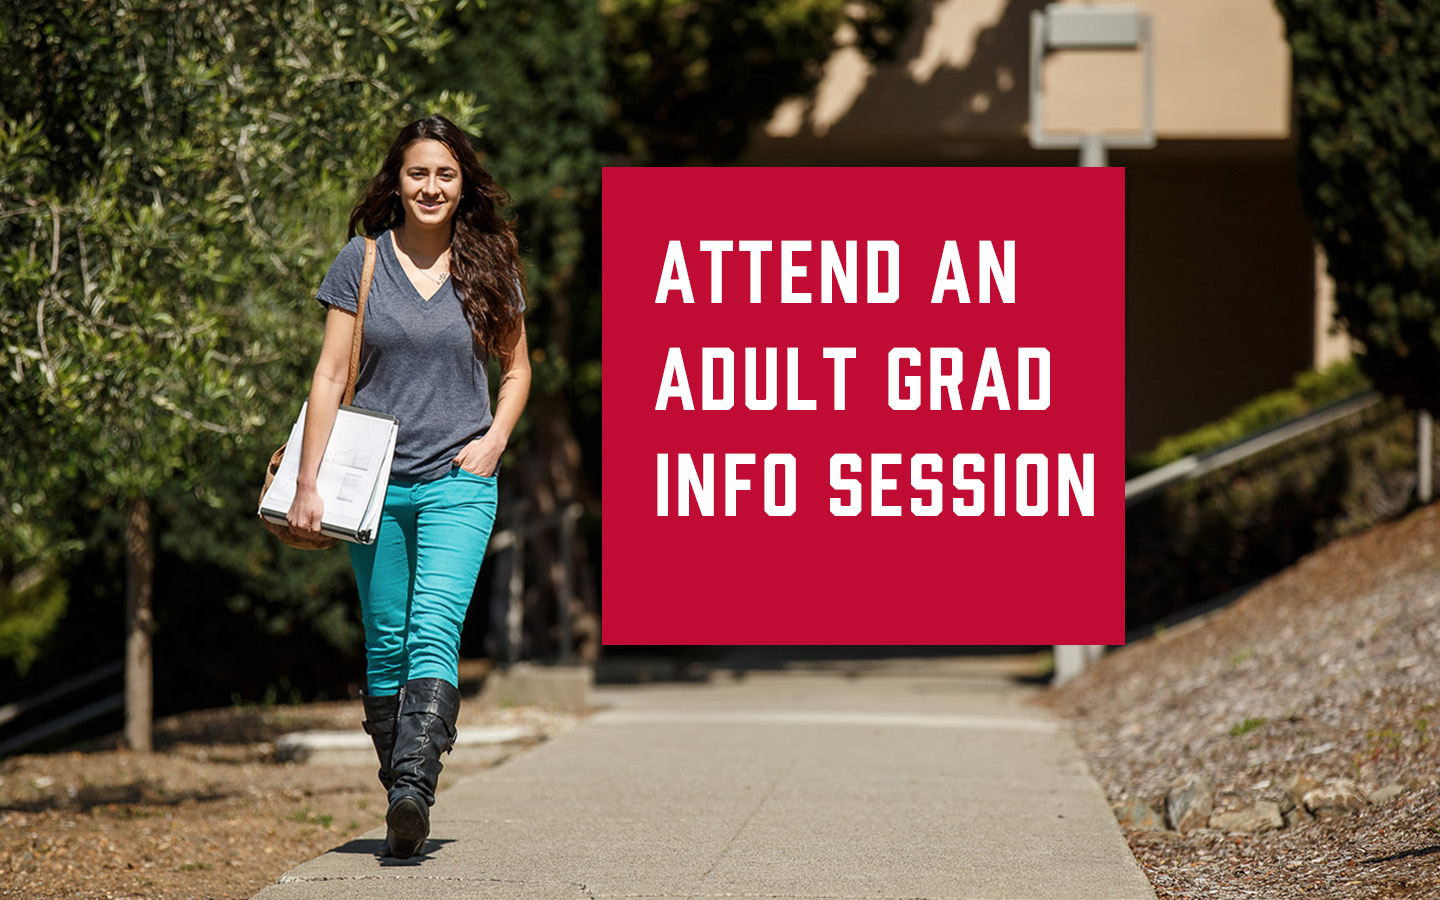 Attend an Infosession